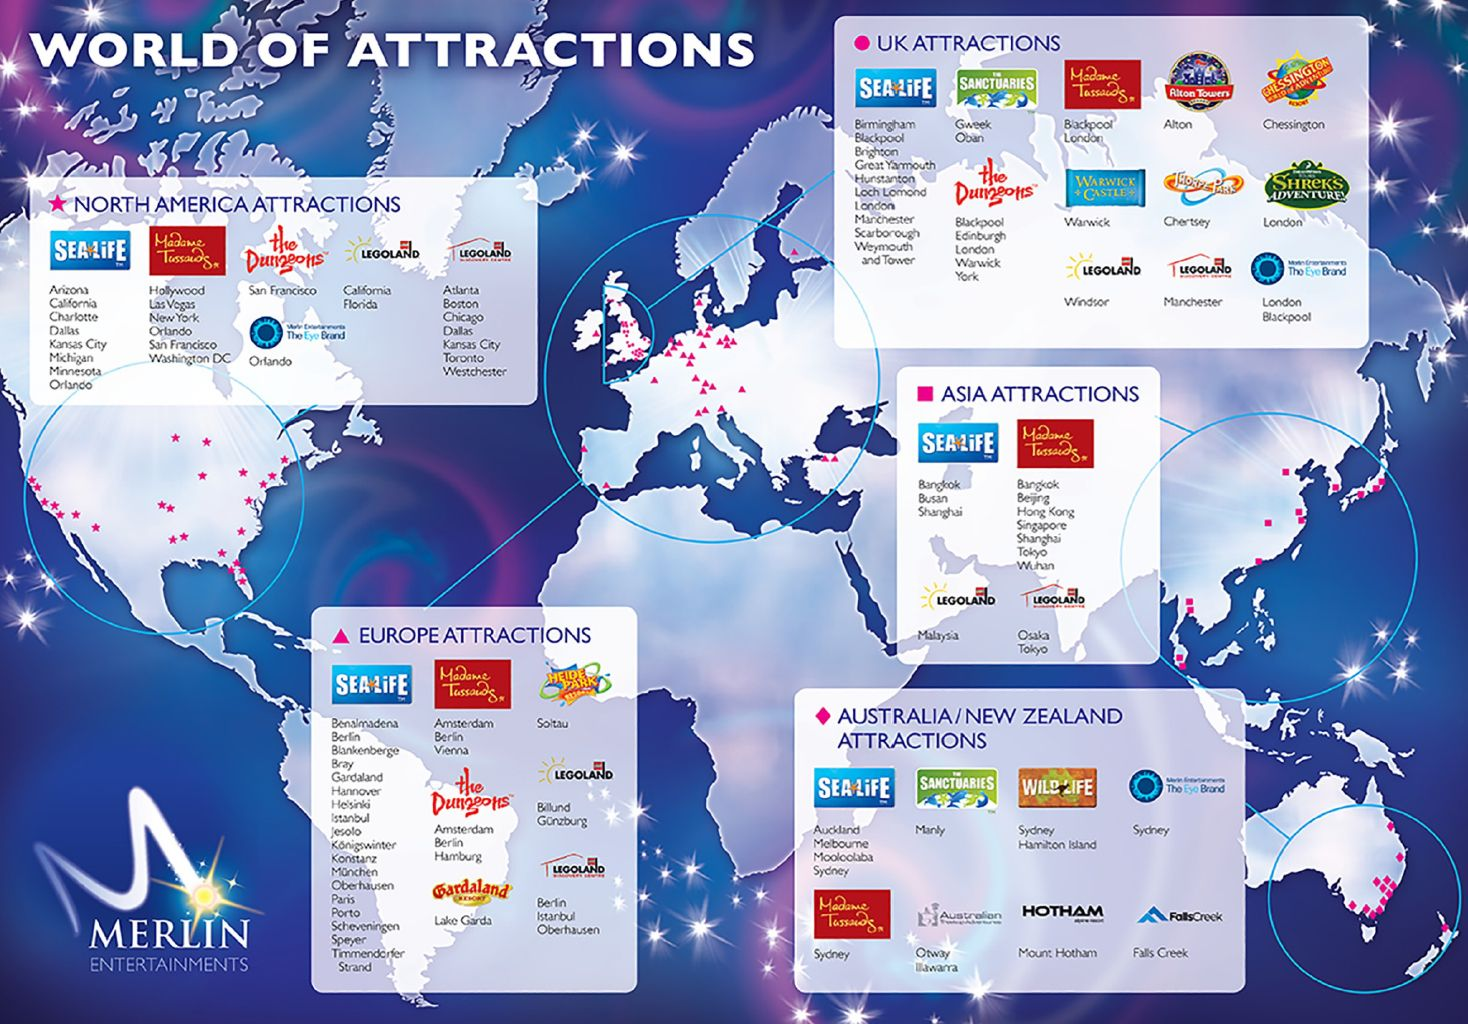 Merlin Entertainment's world of attractions